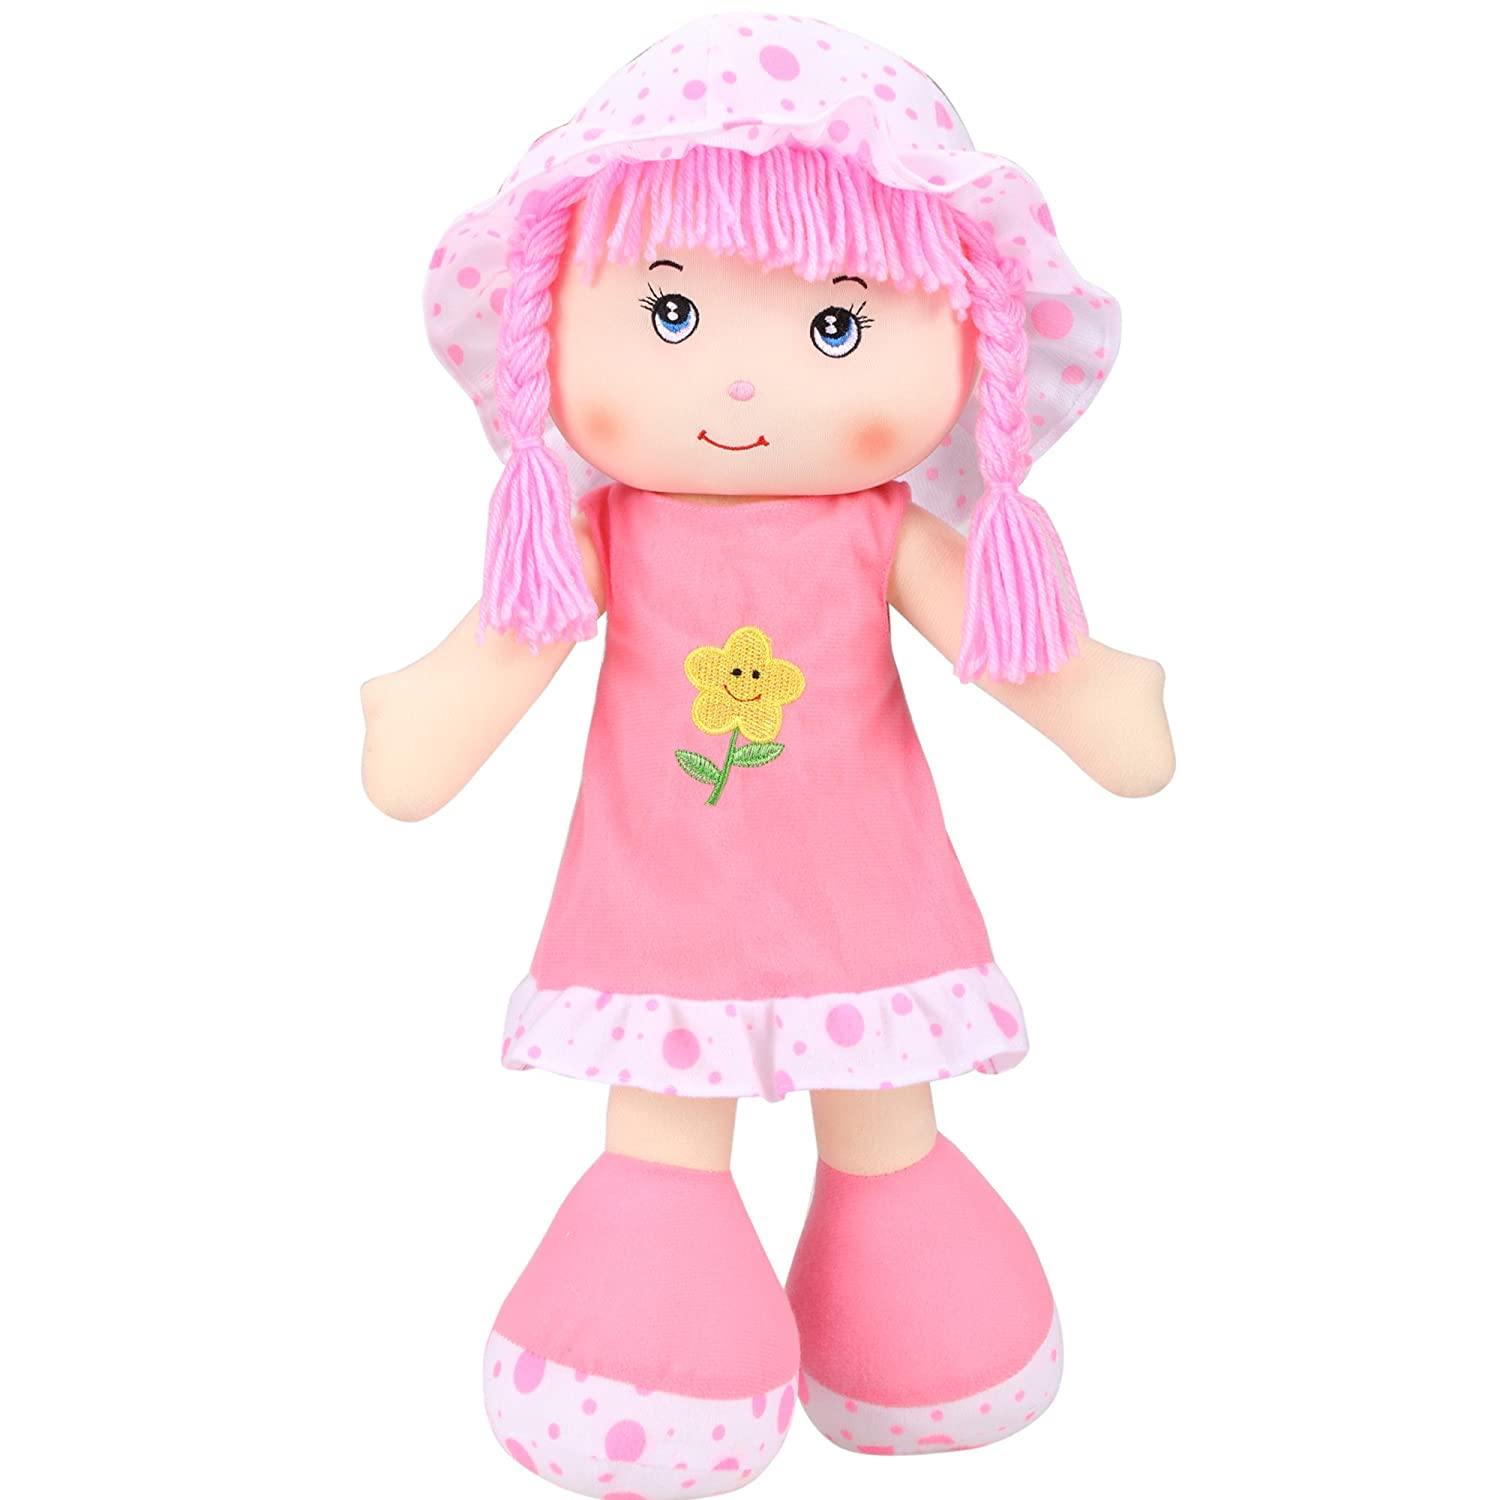 (Pink) - Arshiner Baby 50cm Washable Soft Interactive Play Dolls for Children . or Older  ピンク B017U7961E